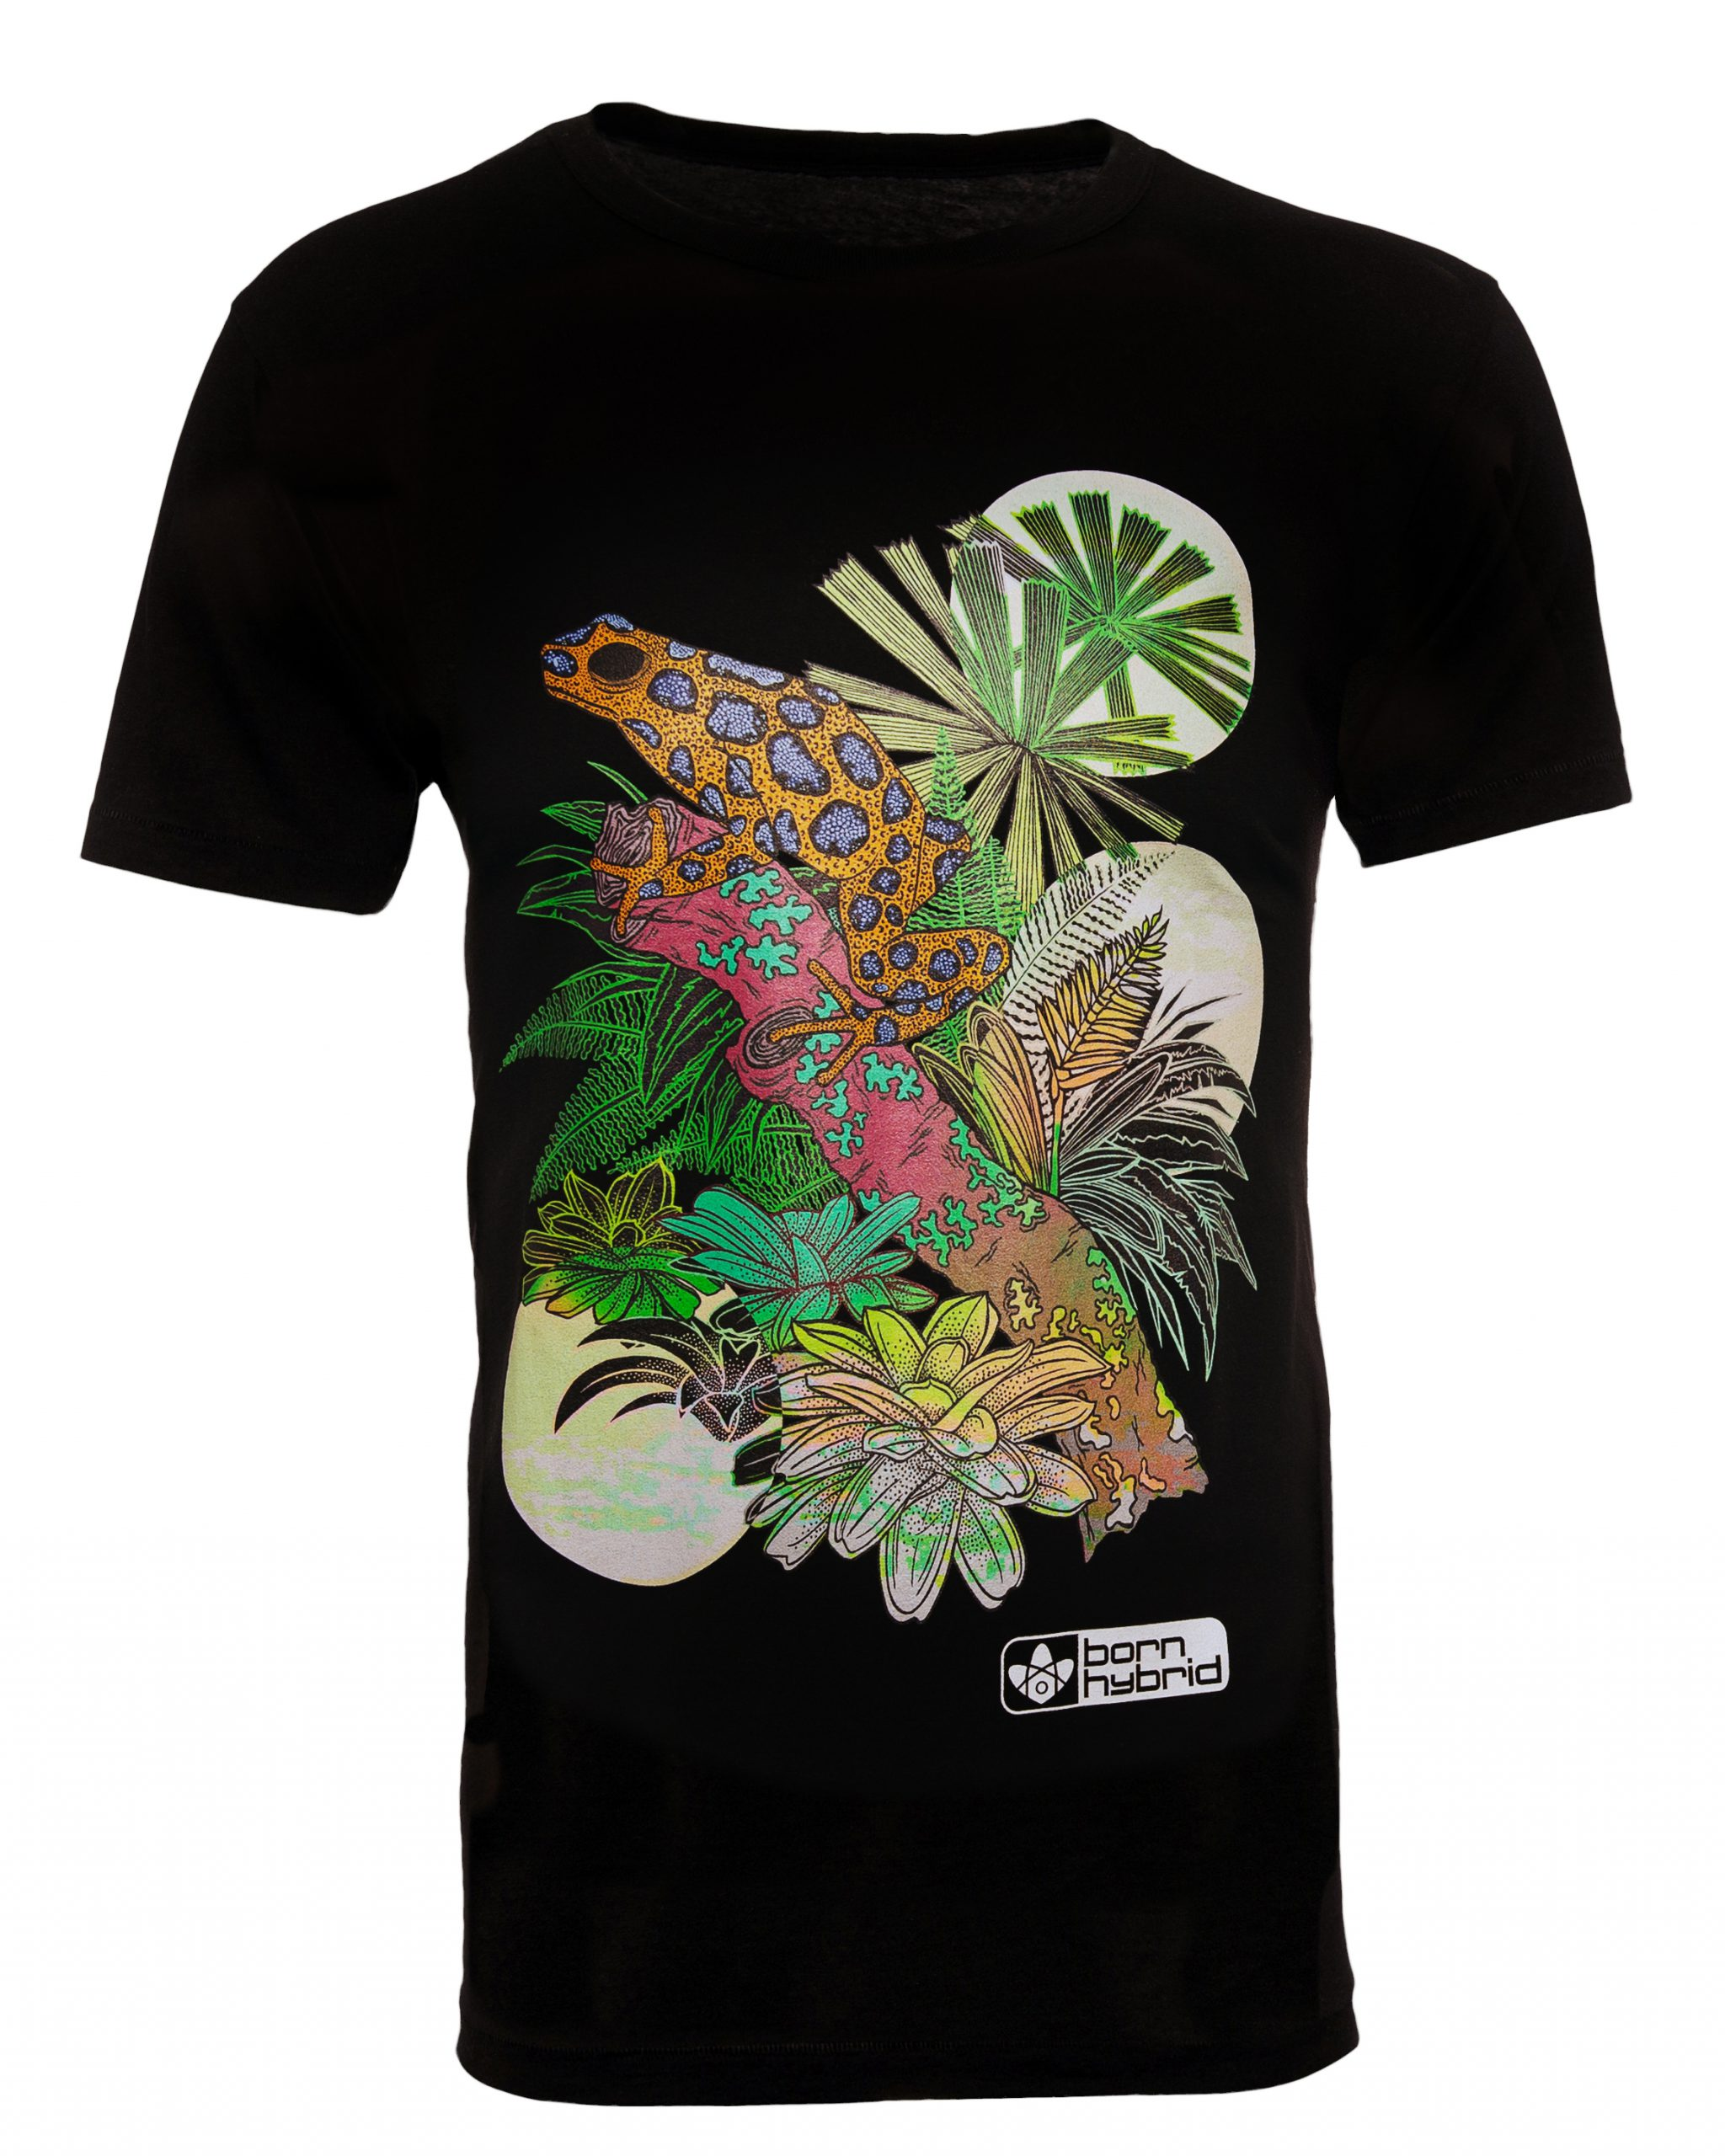 Black frog graphic T-shirt with colourful poison dart frog design. Men's/unisex eco t-shirt by Born Hybrid